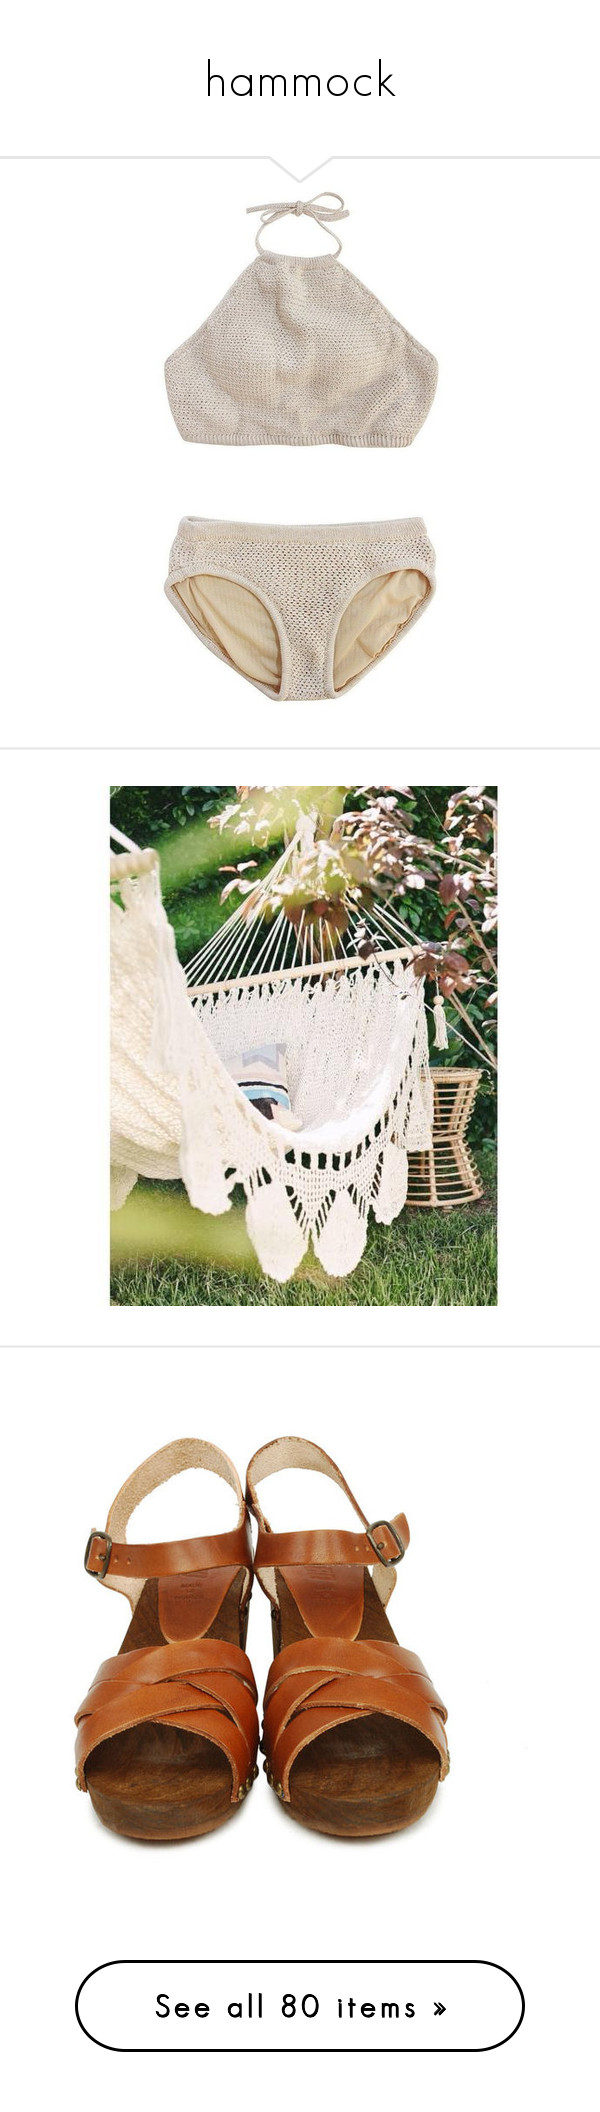 """""""hammock"""" by poisoninmyveins ❤ liked on Polyvore featuring swimwear, bikinis, swim, bathing suits, underwear, halter bathing suit, bikini swimsuit, halter top, swimming costume and halter swimsuit"""